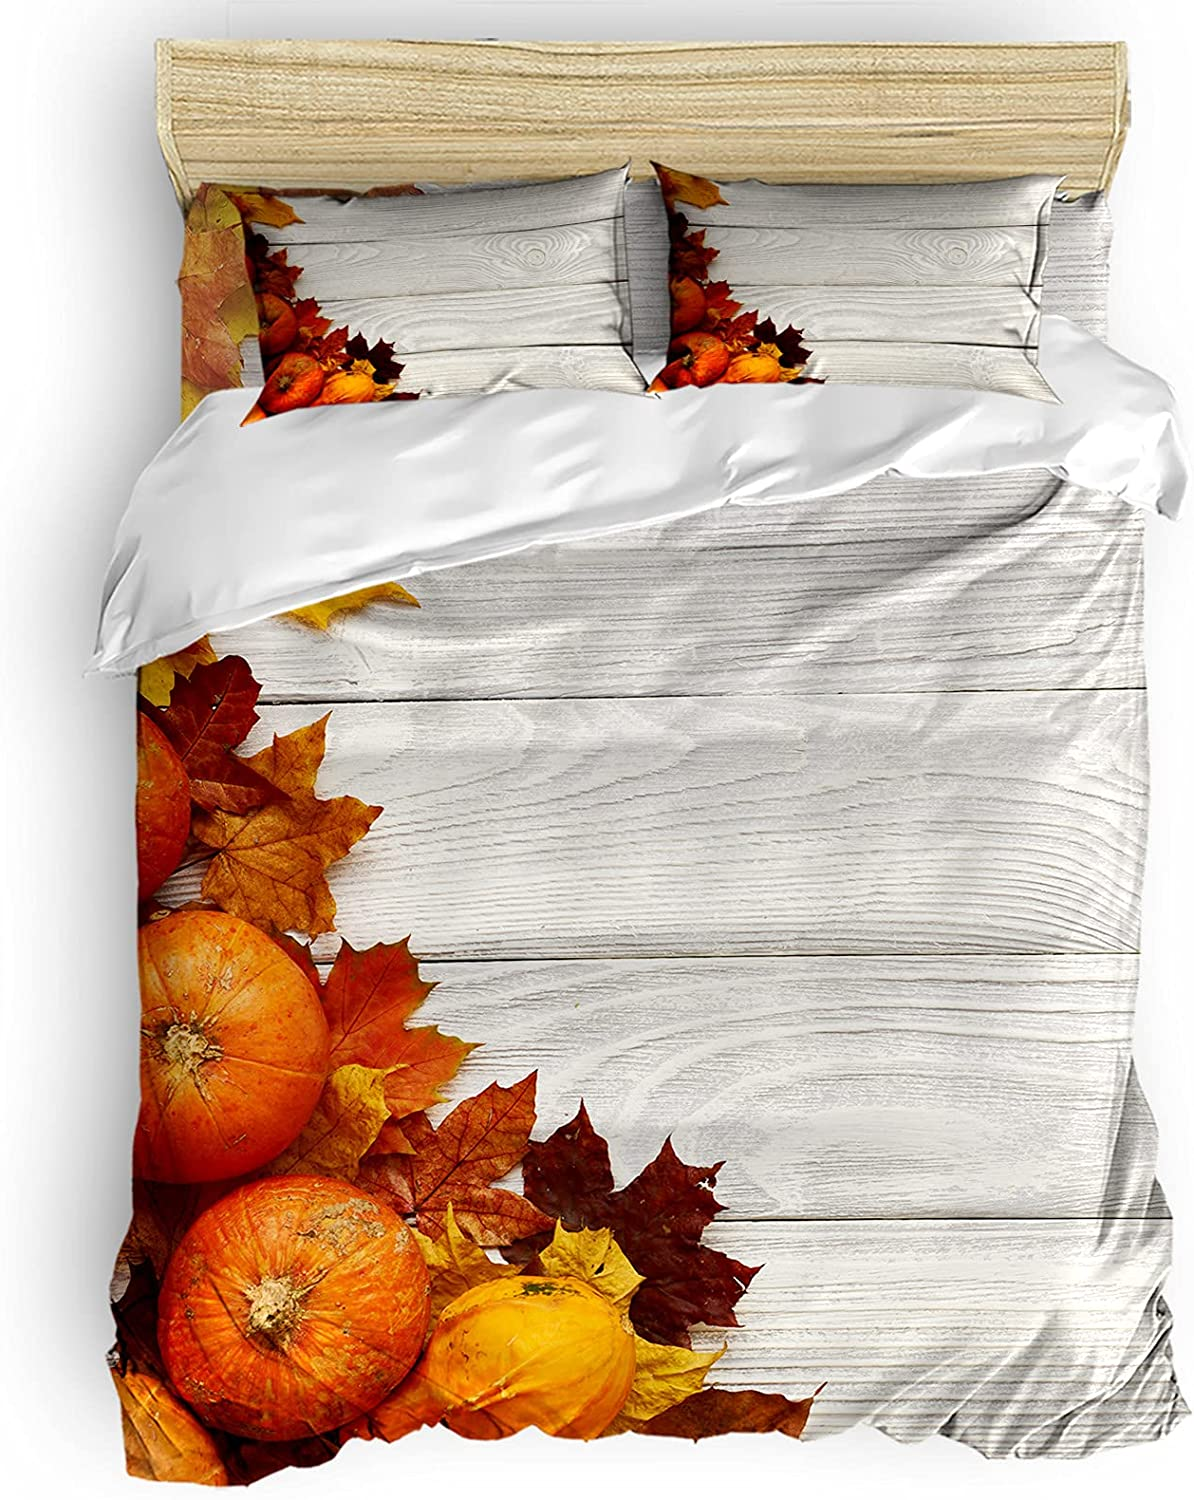 BABE MAPS Thanksgiving Duvet Max 90% Selling and selling OFF Covers Breathabl 4 Full Size Pieces